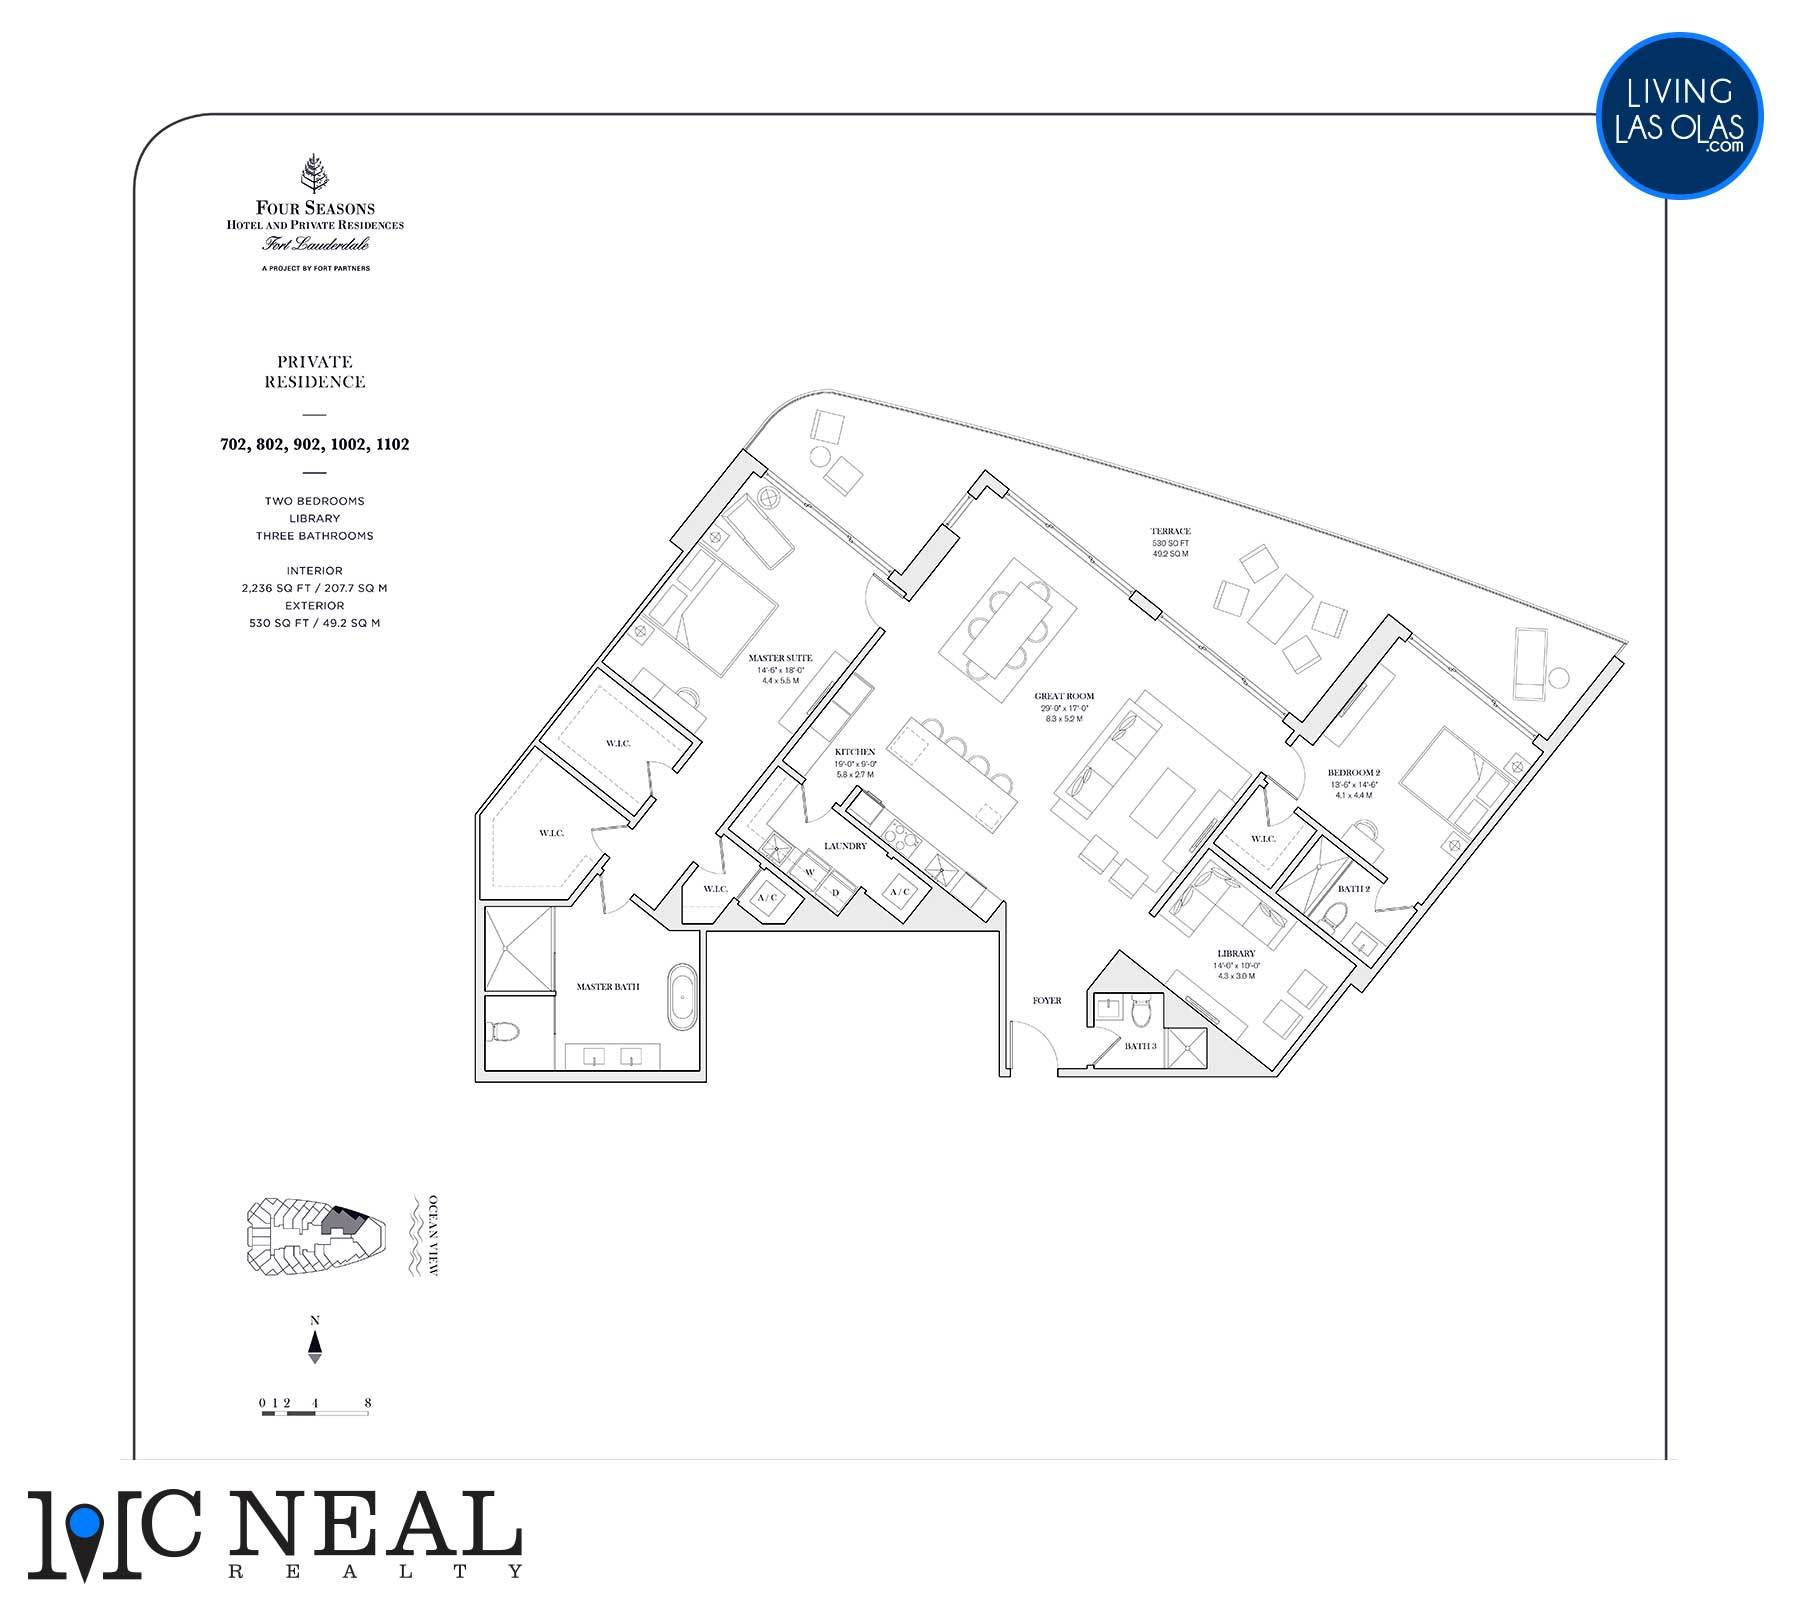 Four Seasons Private Residences Floor Plan 702-1102